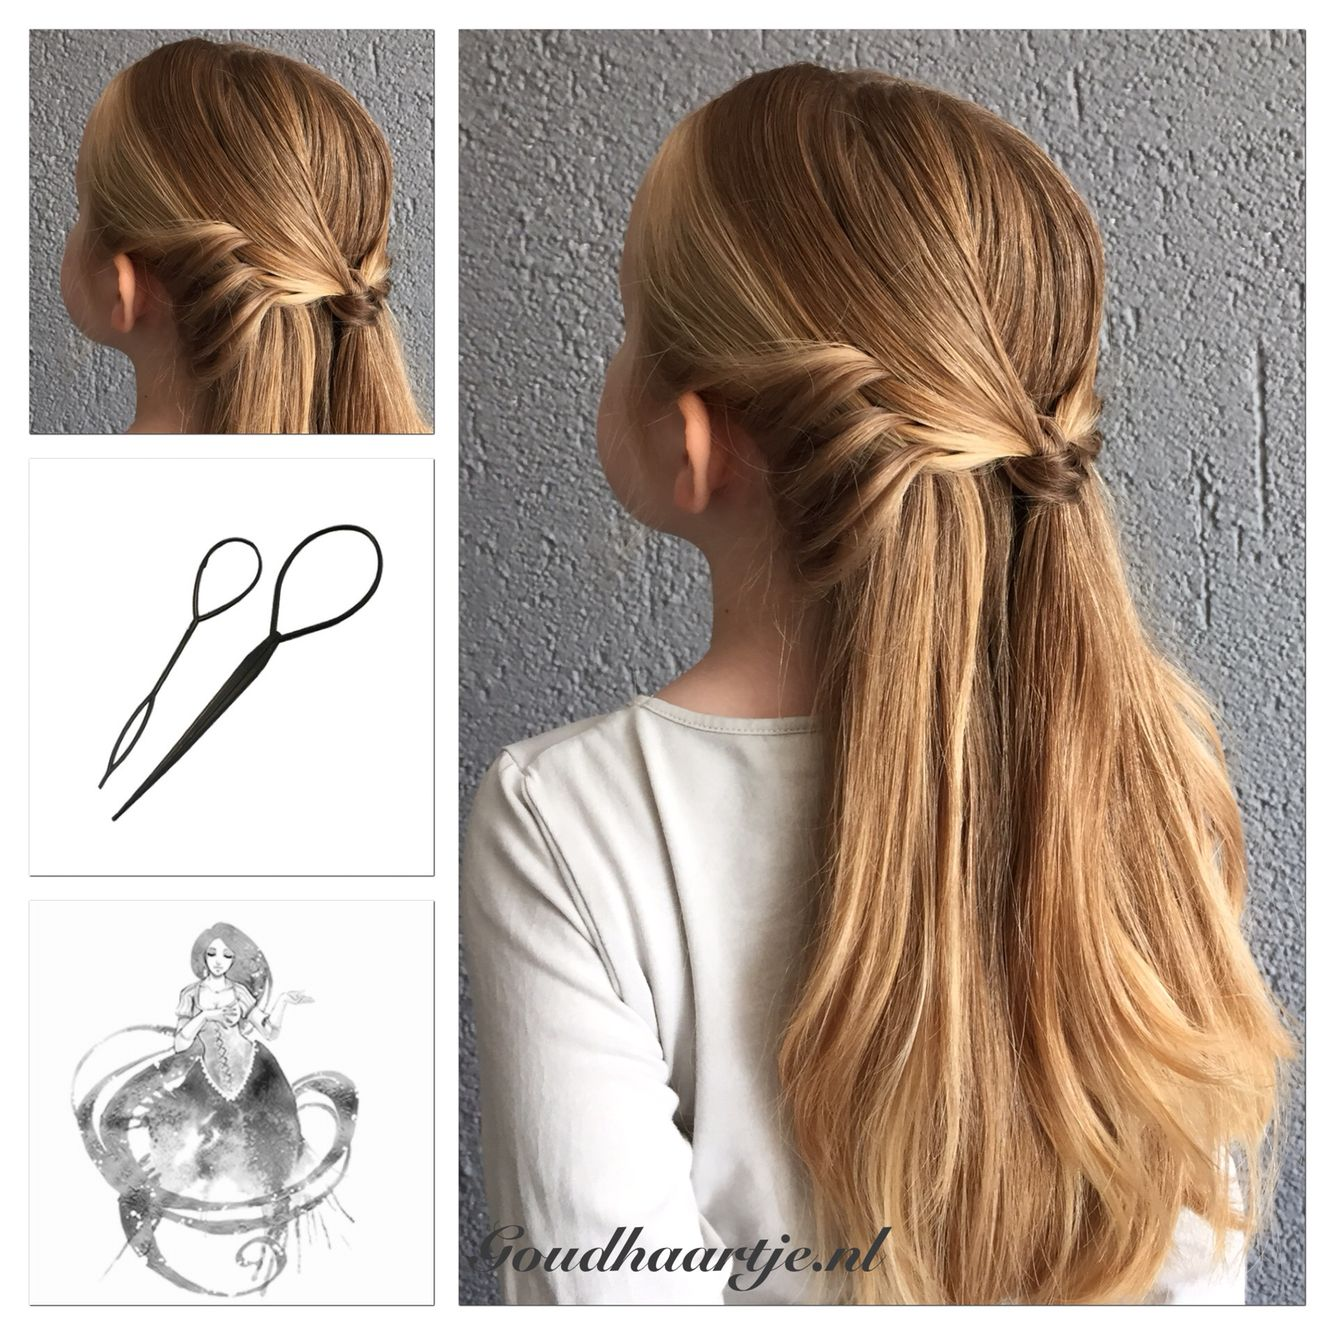 Angel Wings Hairstyle Made With The Topsy Tail From Goudhaartje Nl